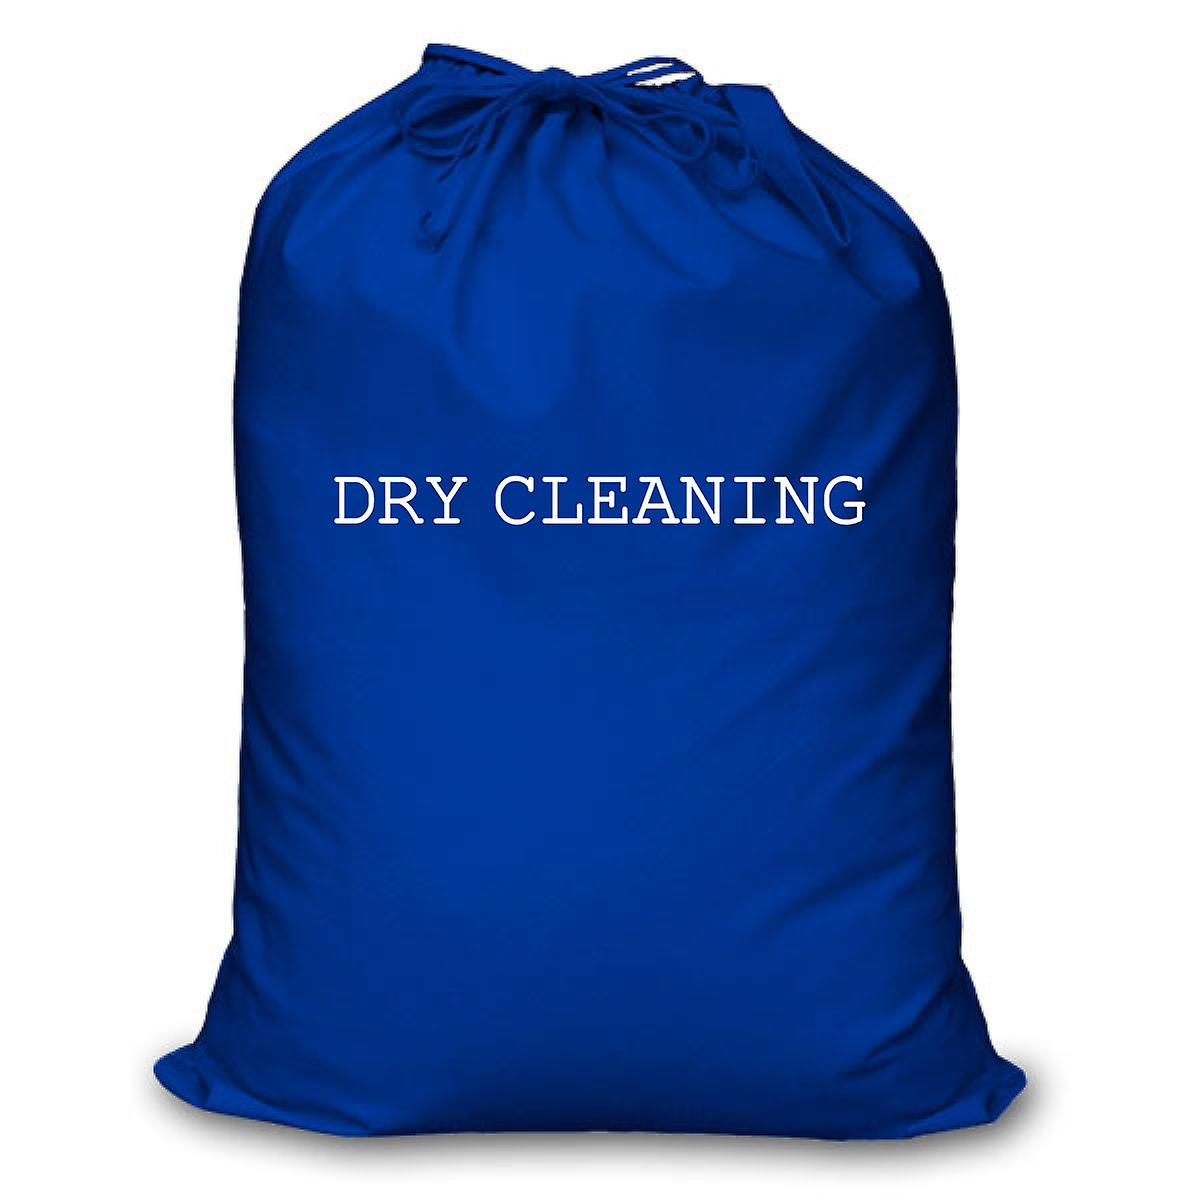 Blue Laundry Bag Dry Cleaning Fruugo Uk